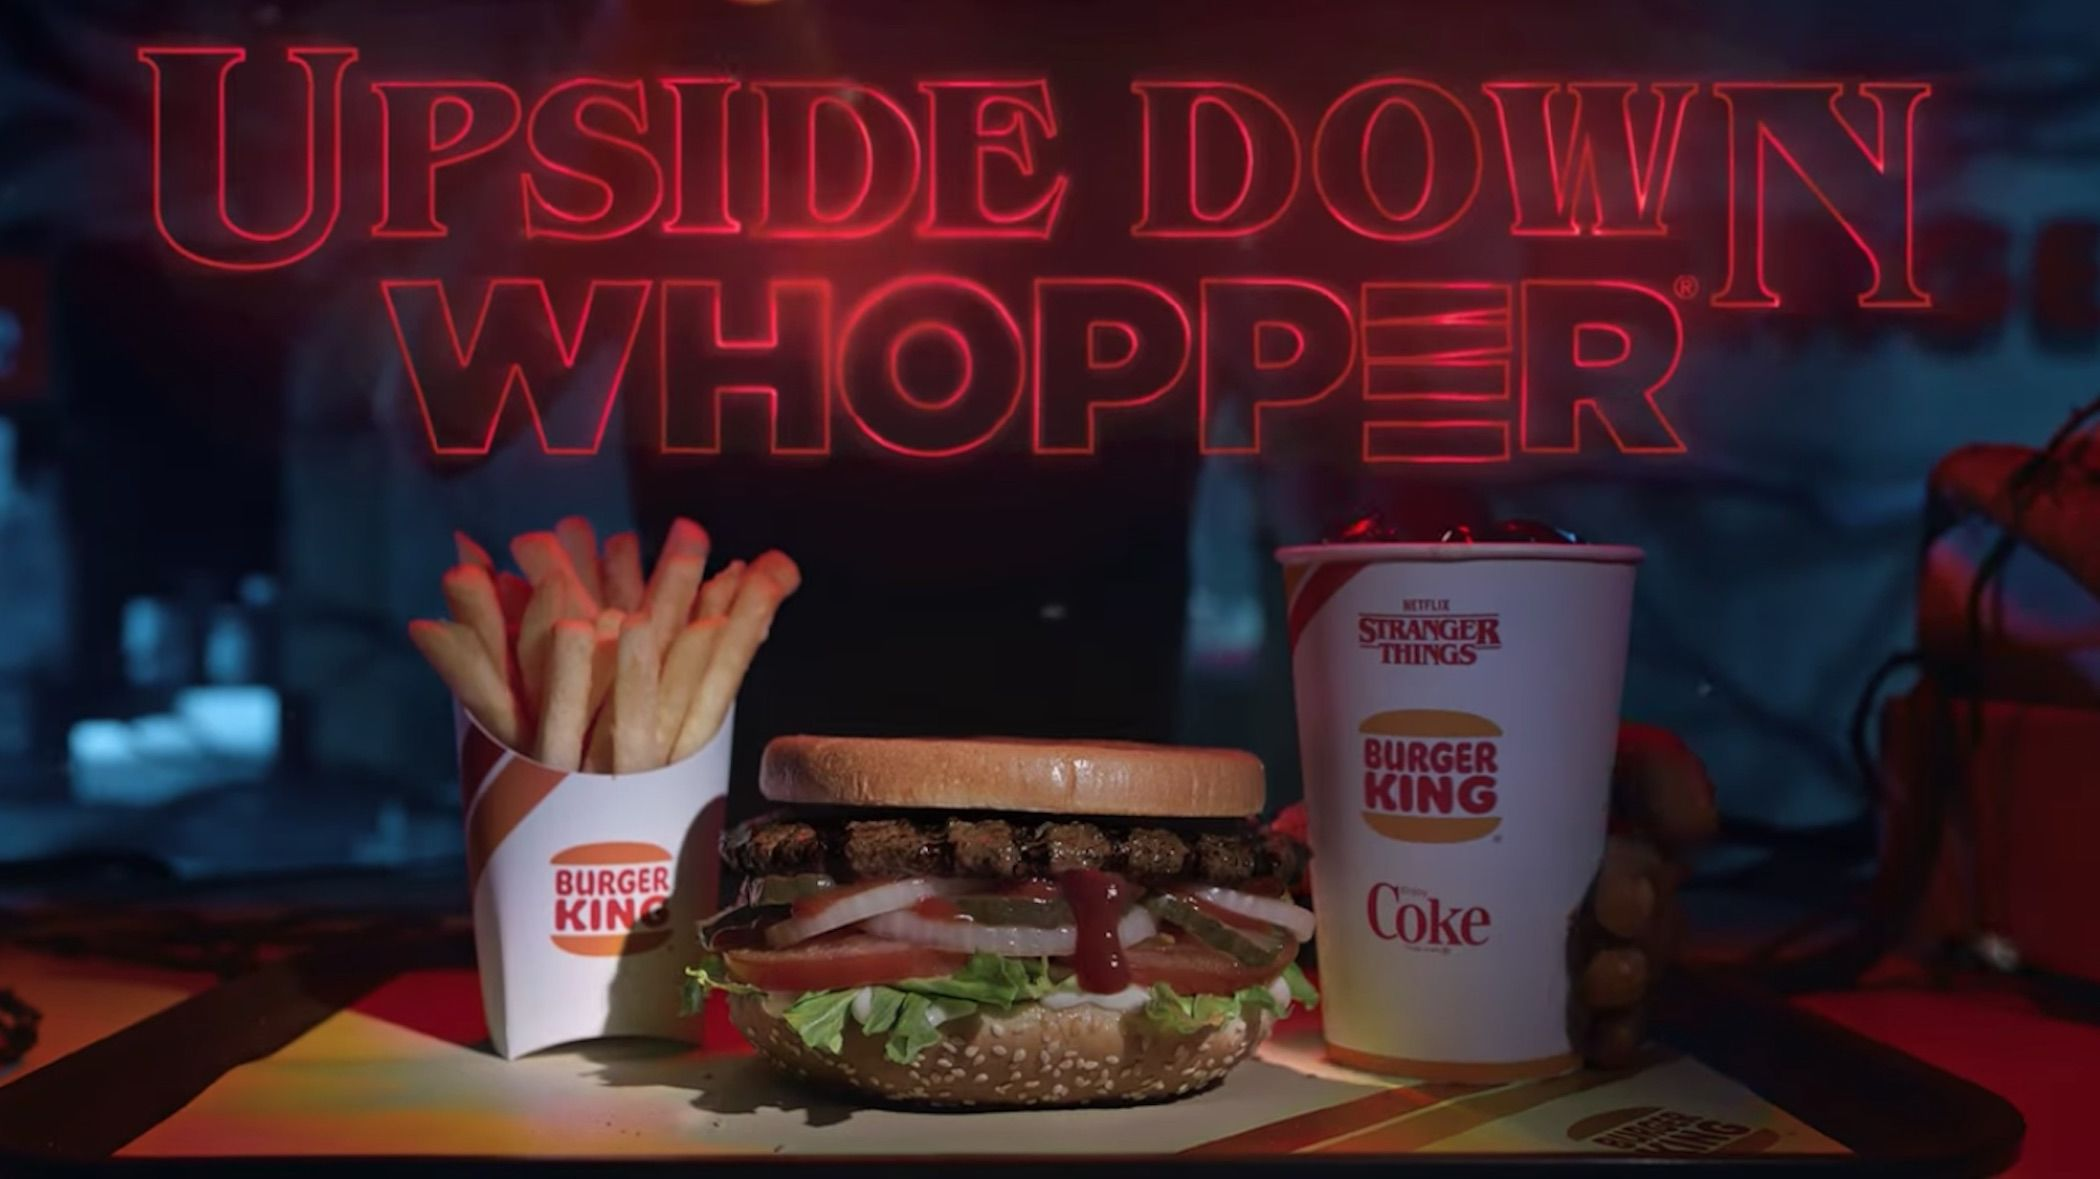 Burger King Stranger Things